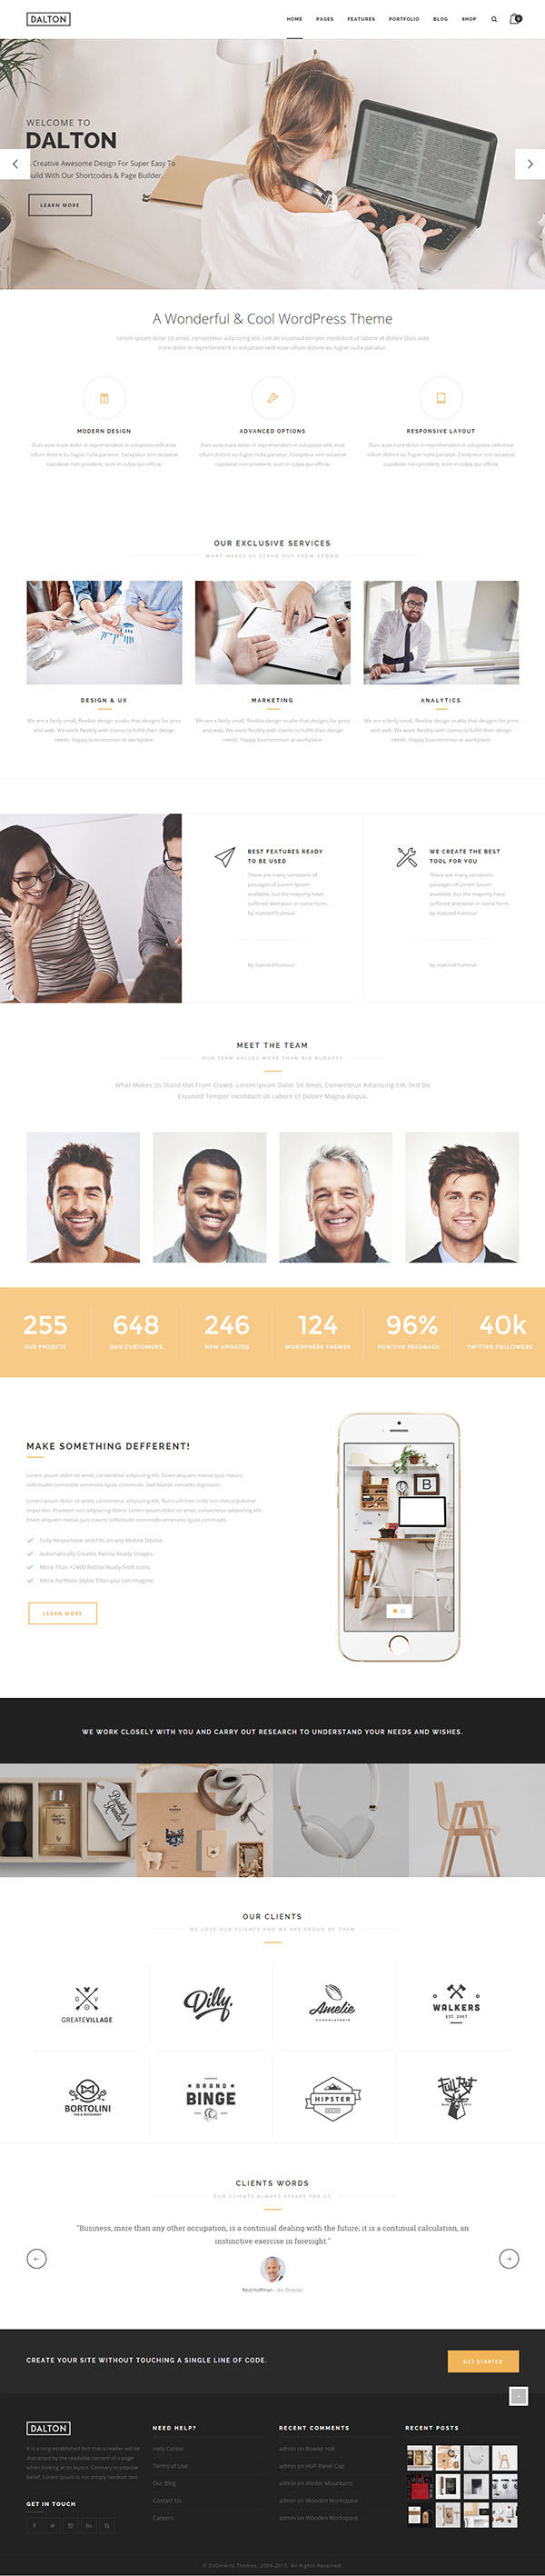 Dalton - Clean Multi-Purpose WordPress Theme